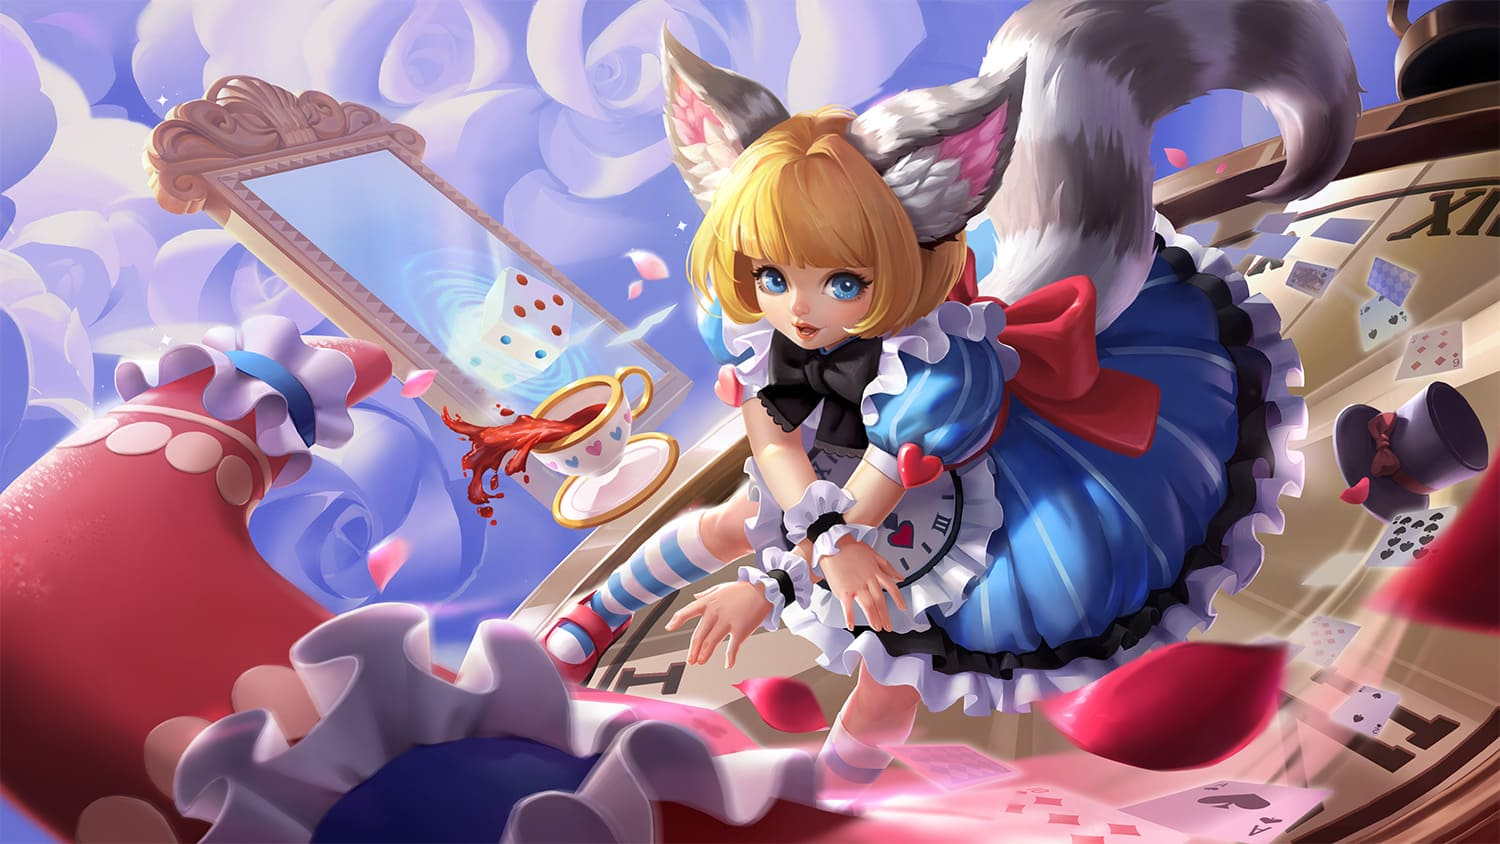 Wallpaper Nana Clockwork Maid Skin Mobile Legends HD for PC